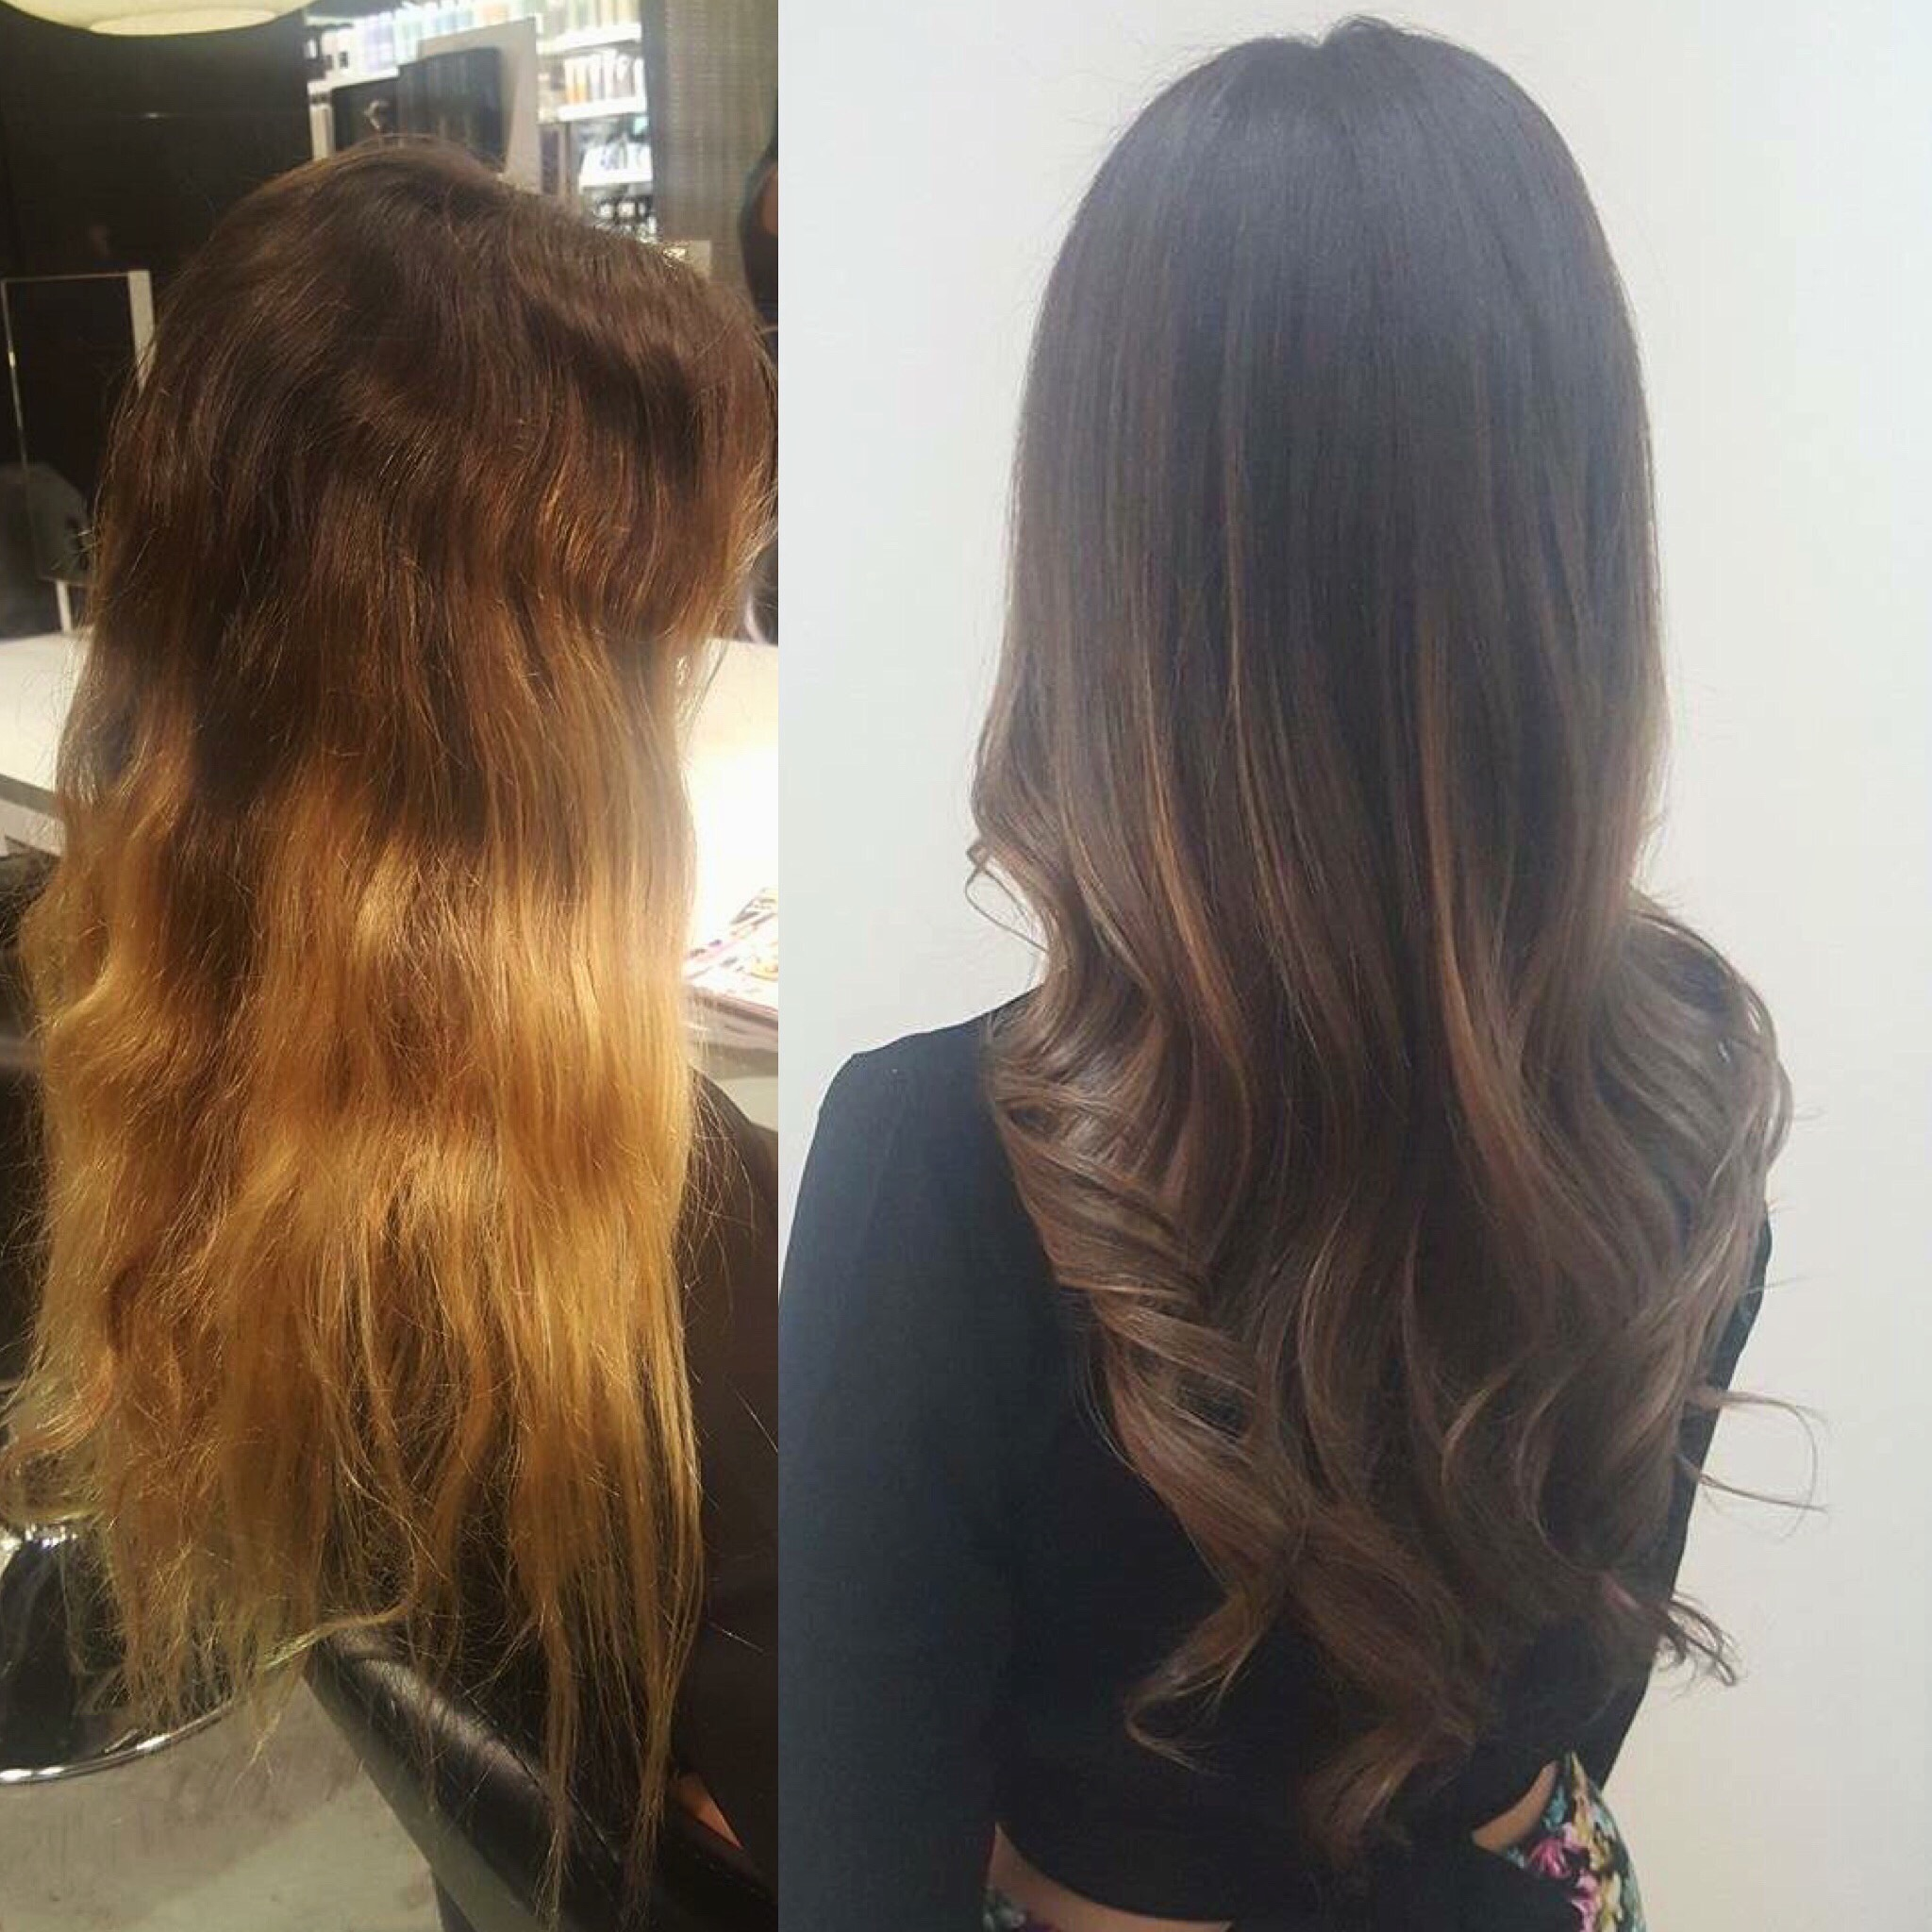 Luxe Balayage Hairdresser specialists in hand painted ... Jessica Alba Botanica